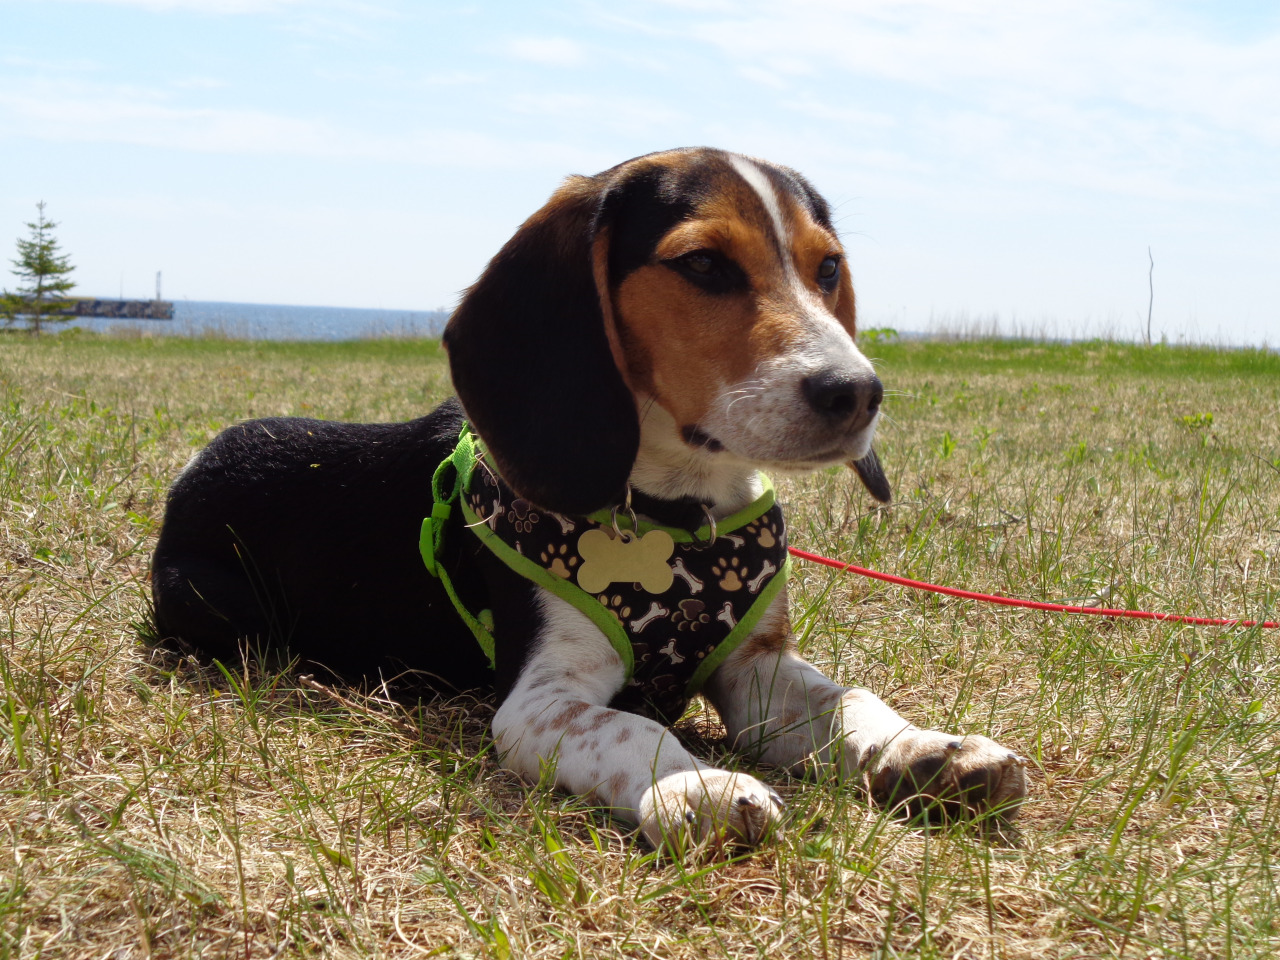 Who is considered the most famous beagle of all time?